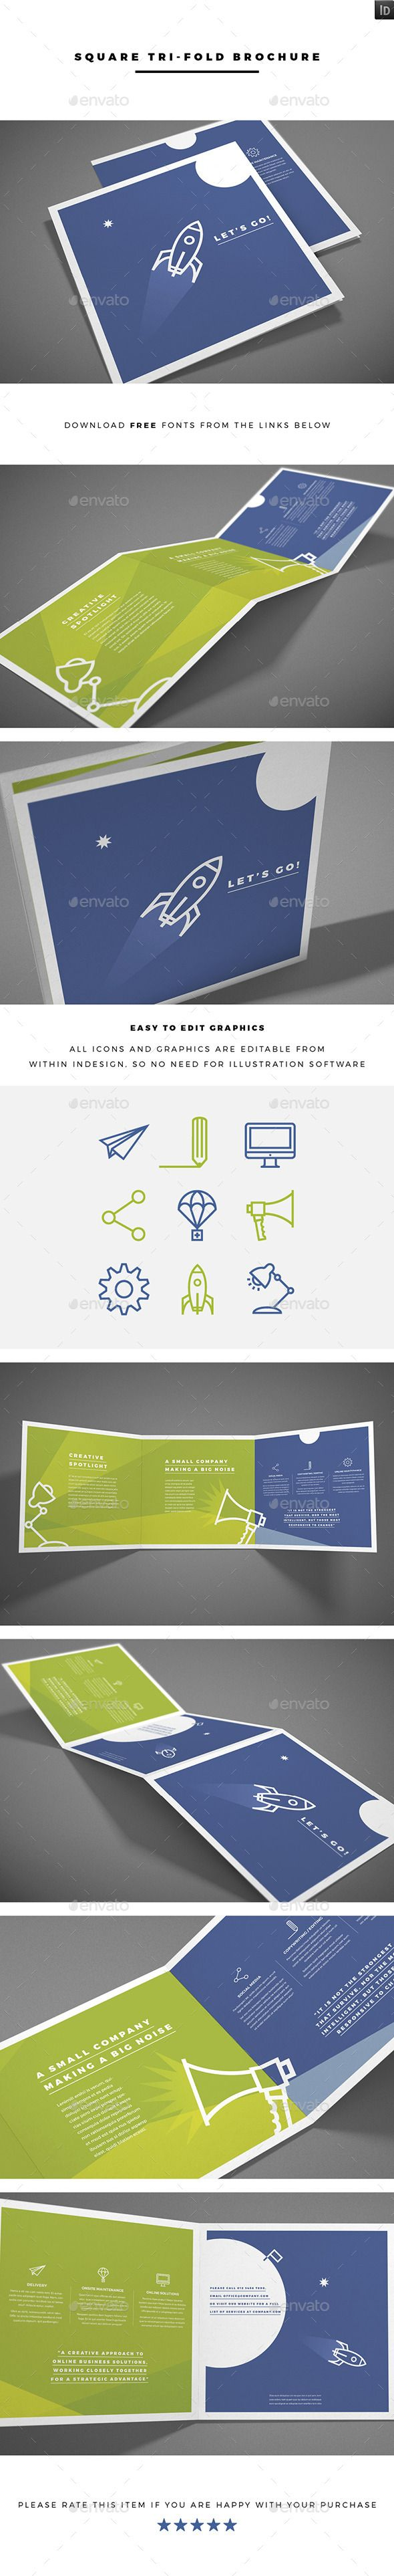 Square Tri-fold Brochure Template #design Download: http://graphicriver.net/item/square-trifold-brochure/12050487?ref=ksioks